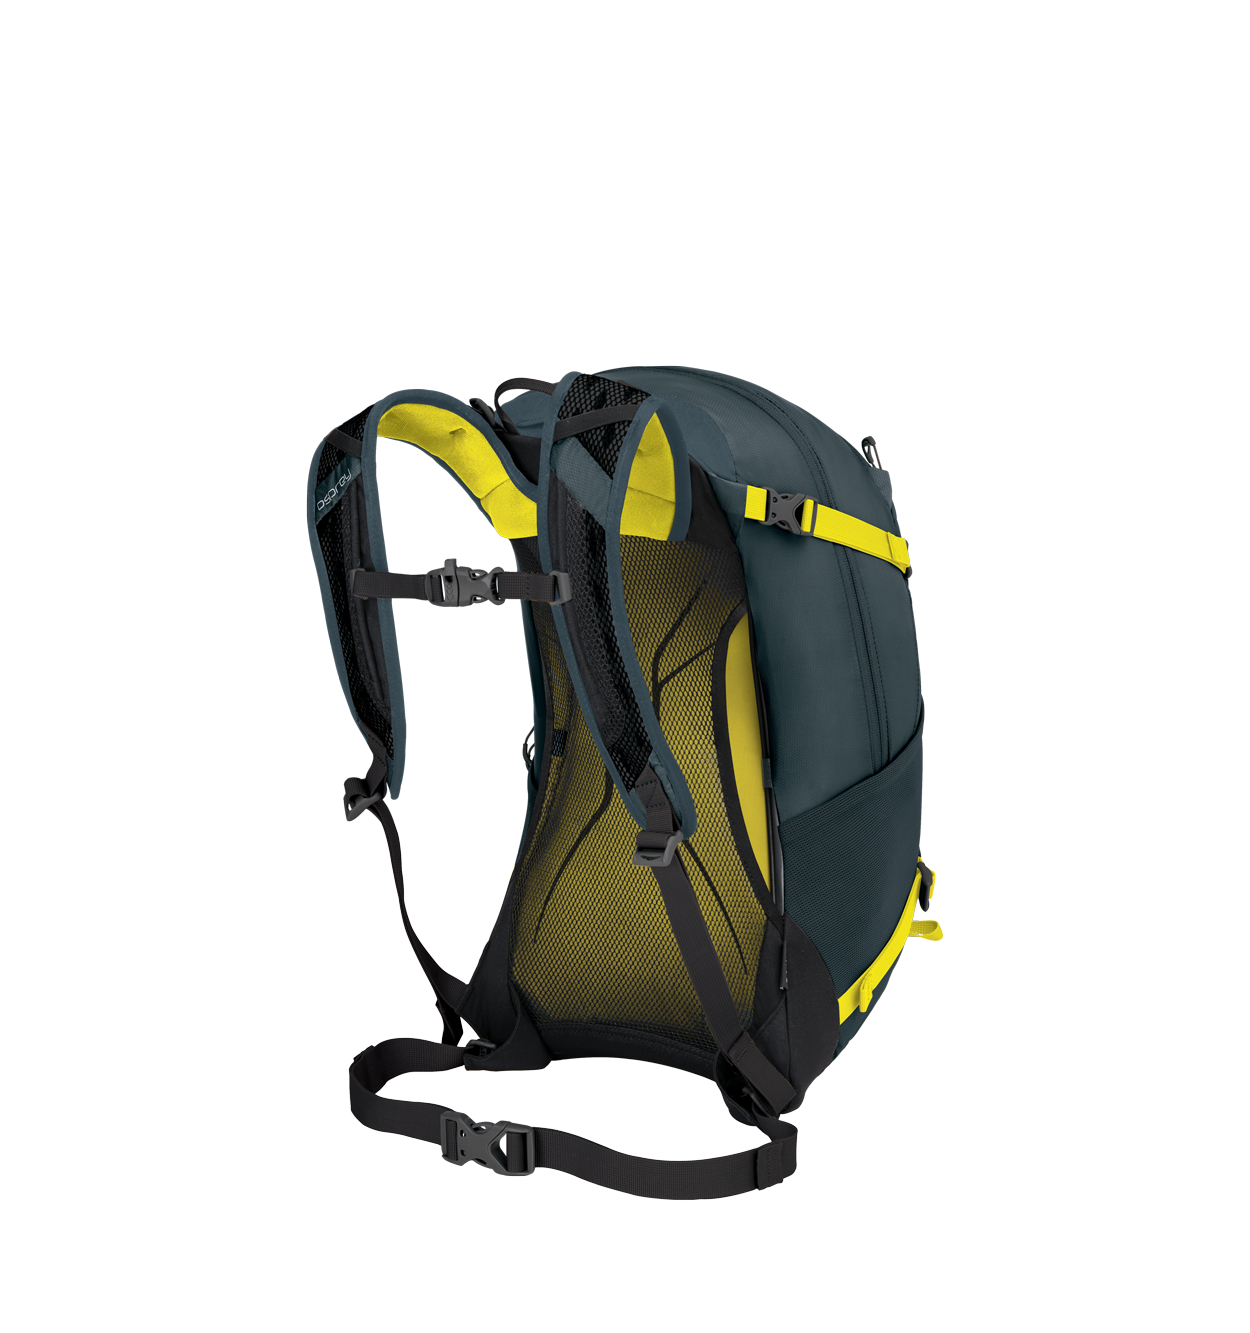 8fdb4644b4aa The Ventilated Pinnacle | Osprey Europe